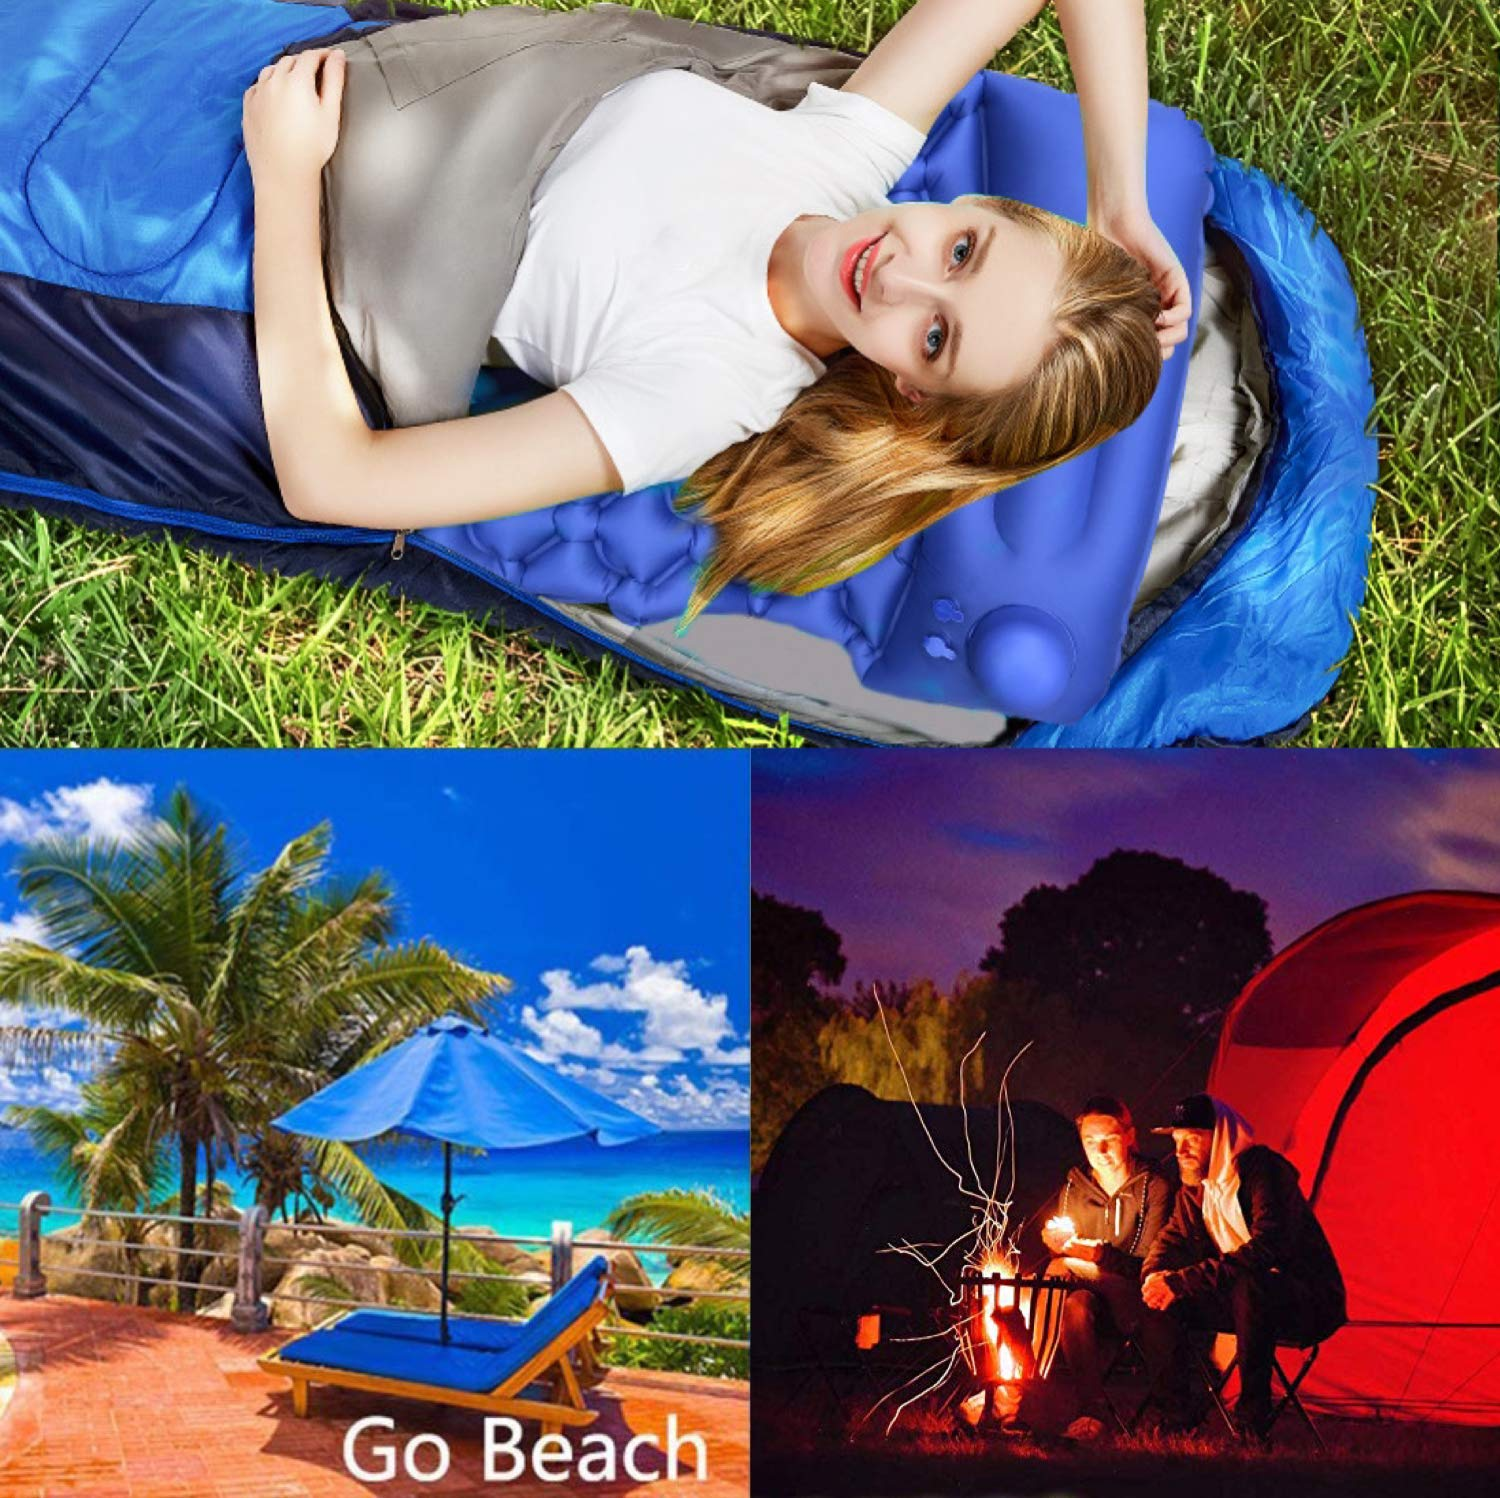 Amazon.com: Camping sleeping mat Hand - pressed inflatable ...